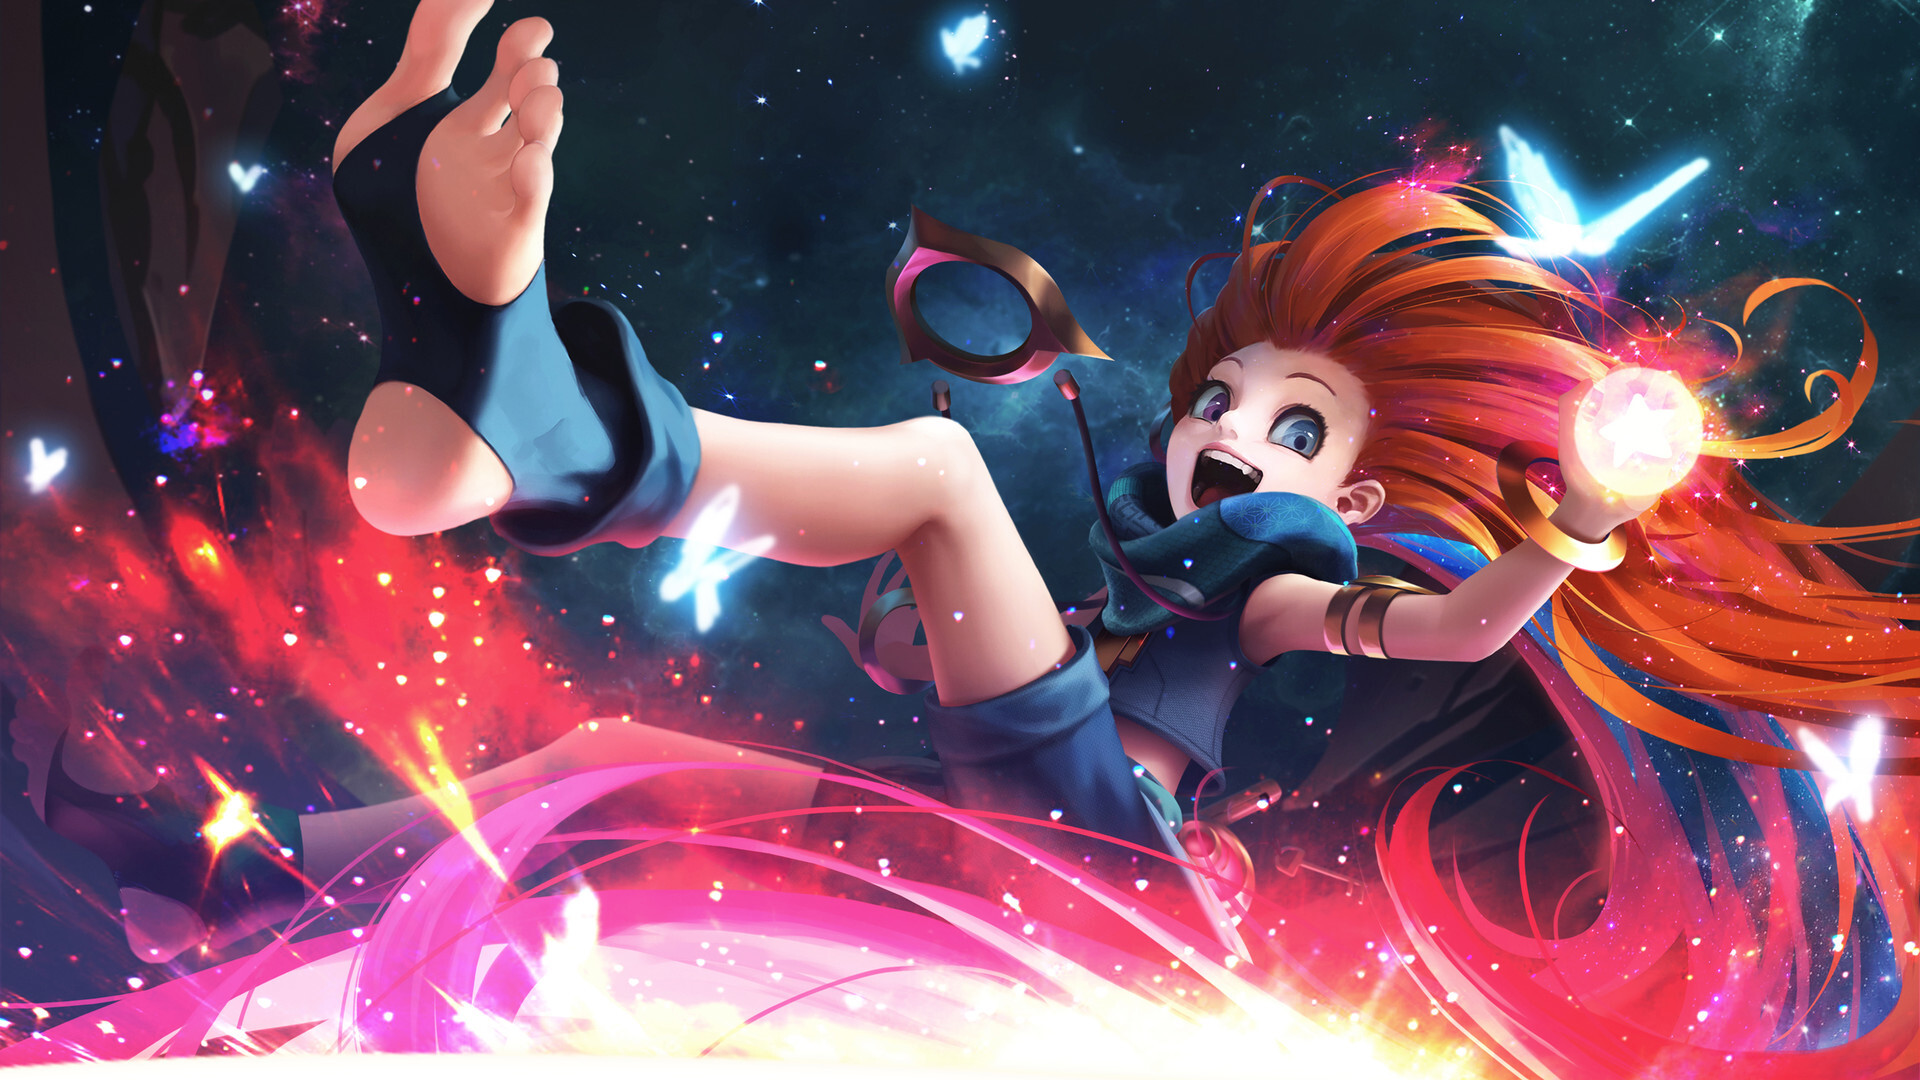 1920x1080 Zoe League Of Legends Hd Laptop Full Hd 1080p Hd